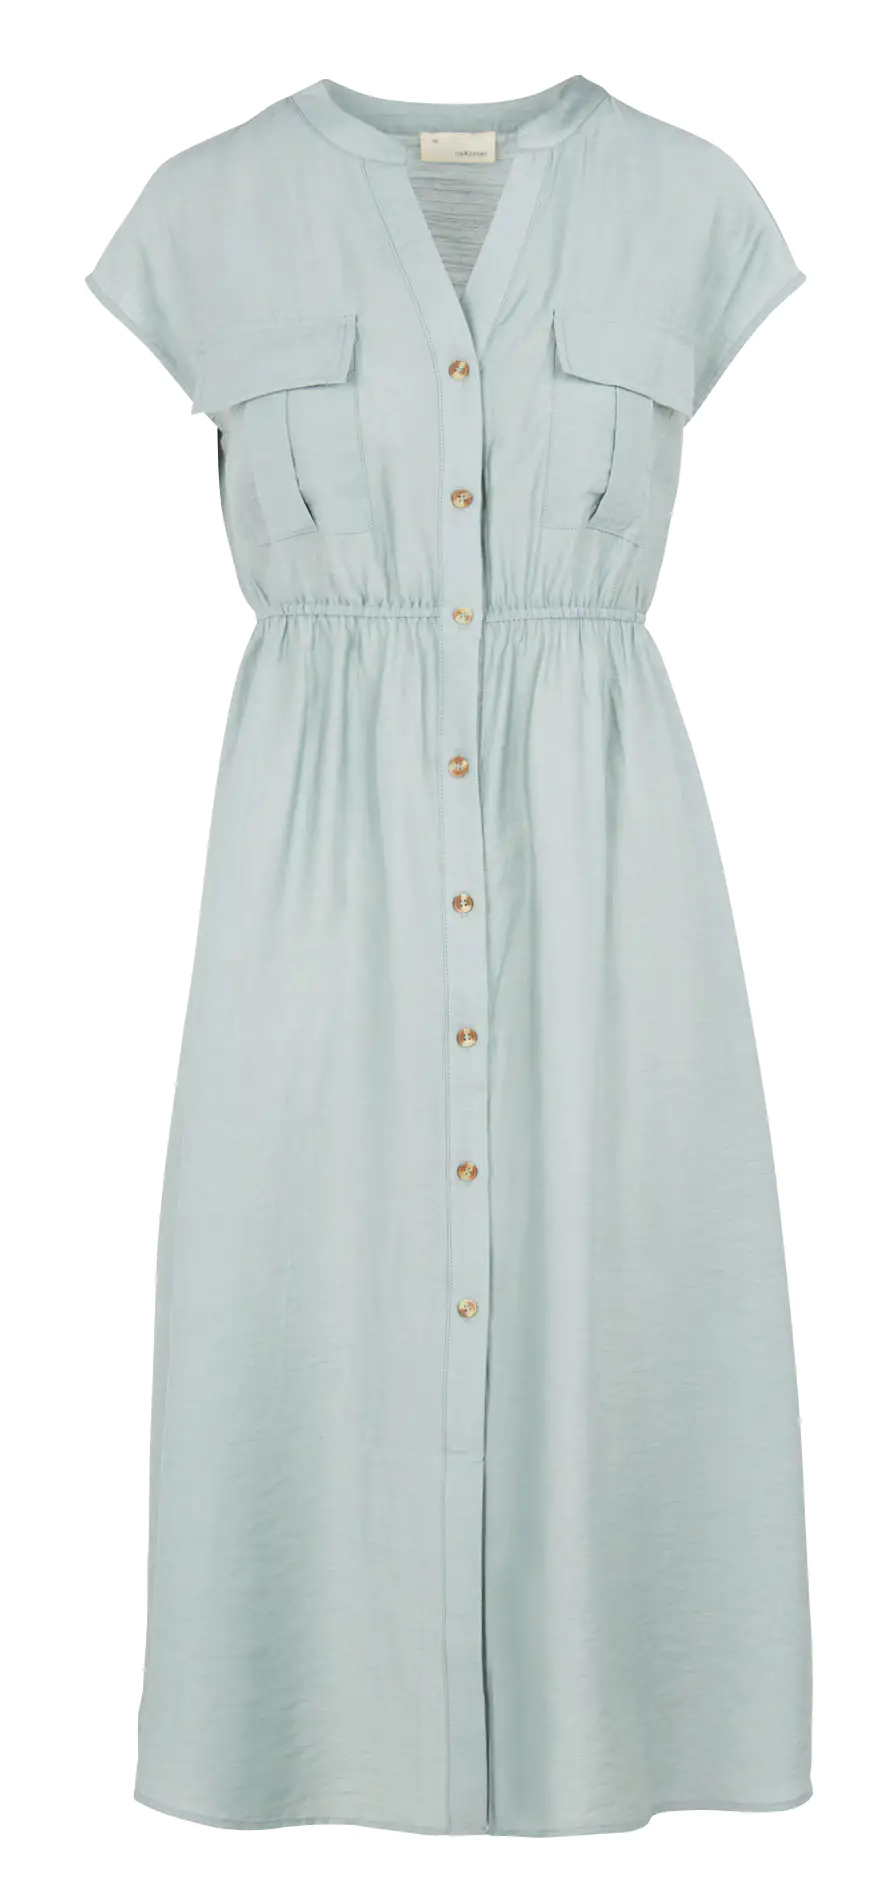 THE KORNER BUTTONED MIDI DRESS